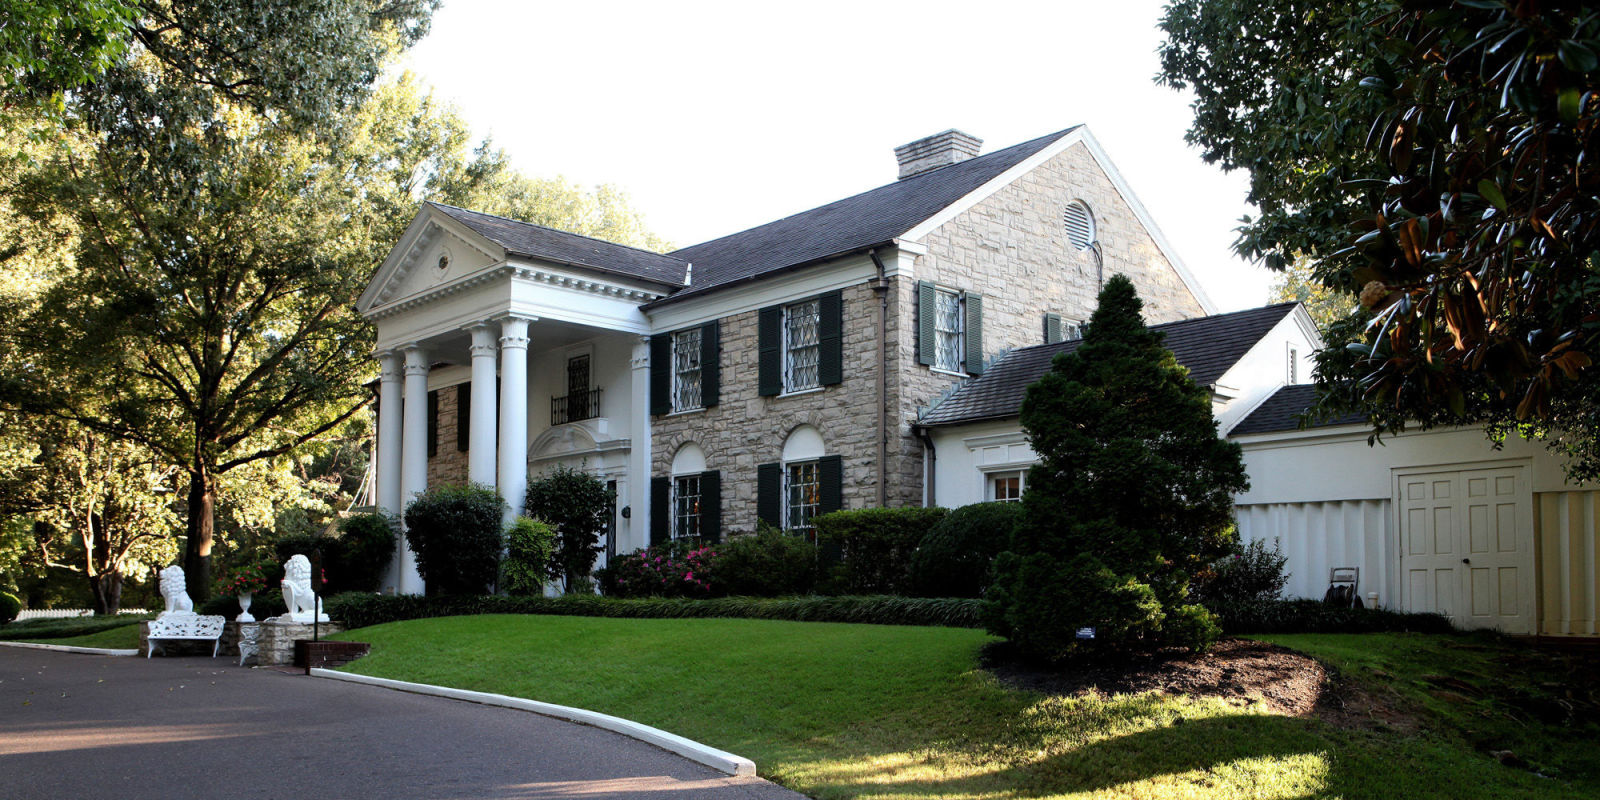 Graceland S Jaw Dropping 137 Million Expansion Is Finally